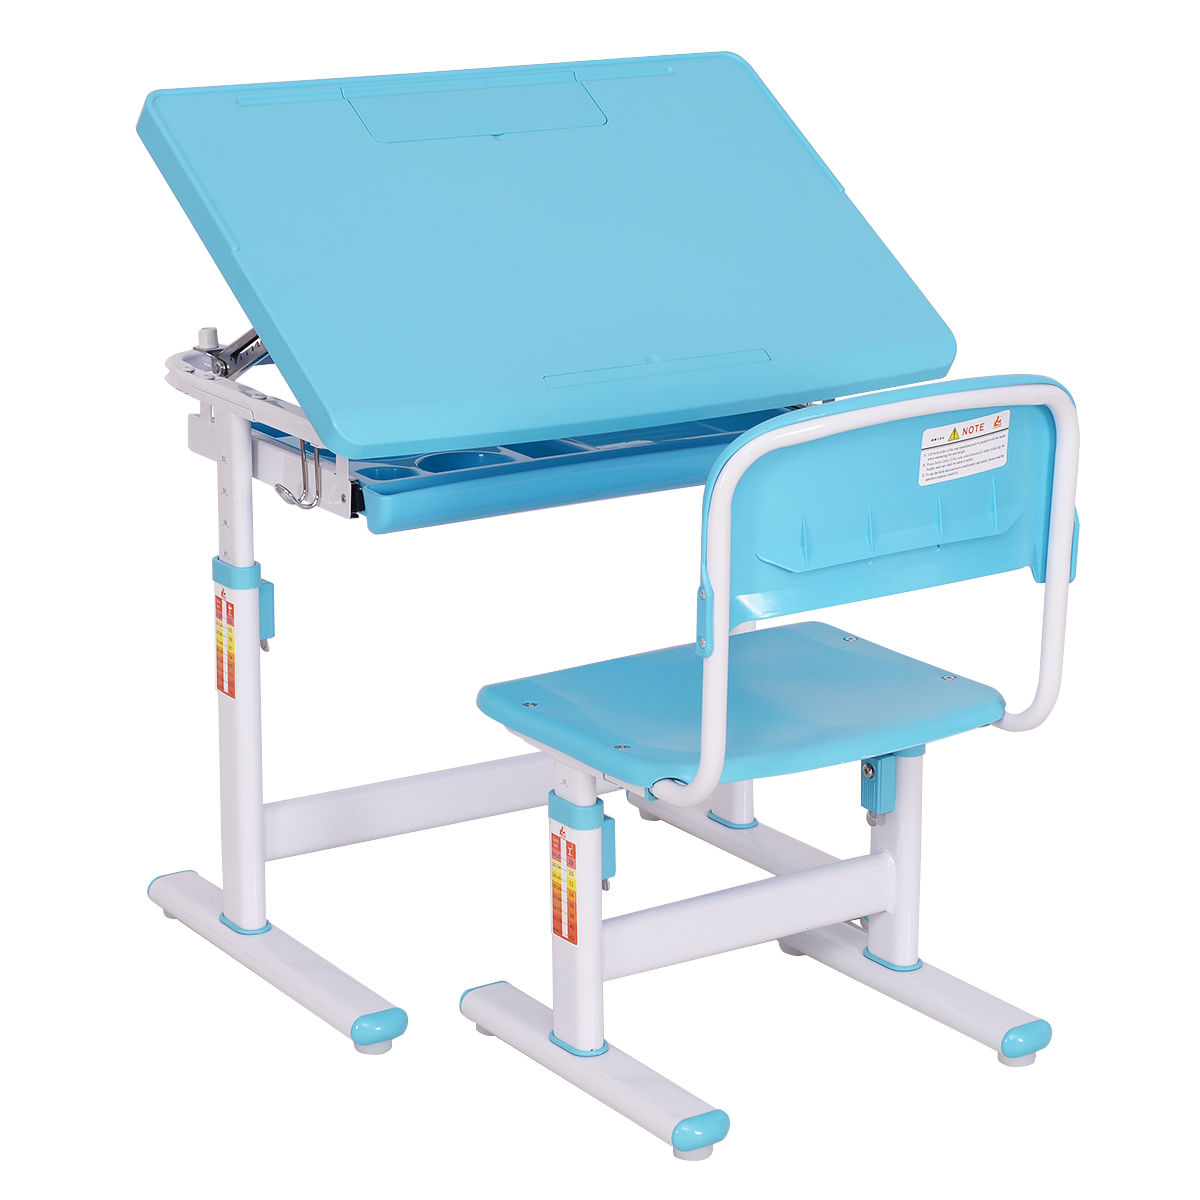 Costway Children Desk & Chair Set Height Adjustable Student Study Kids Work Station Blue